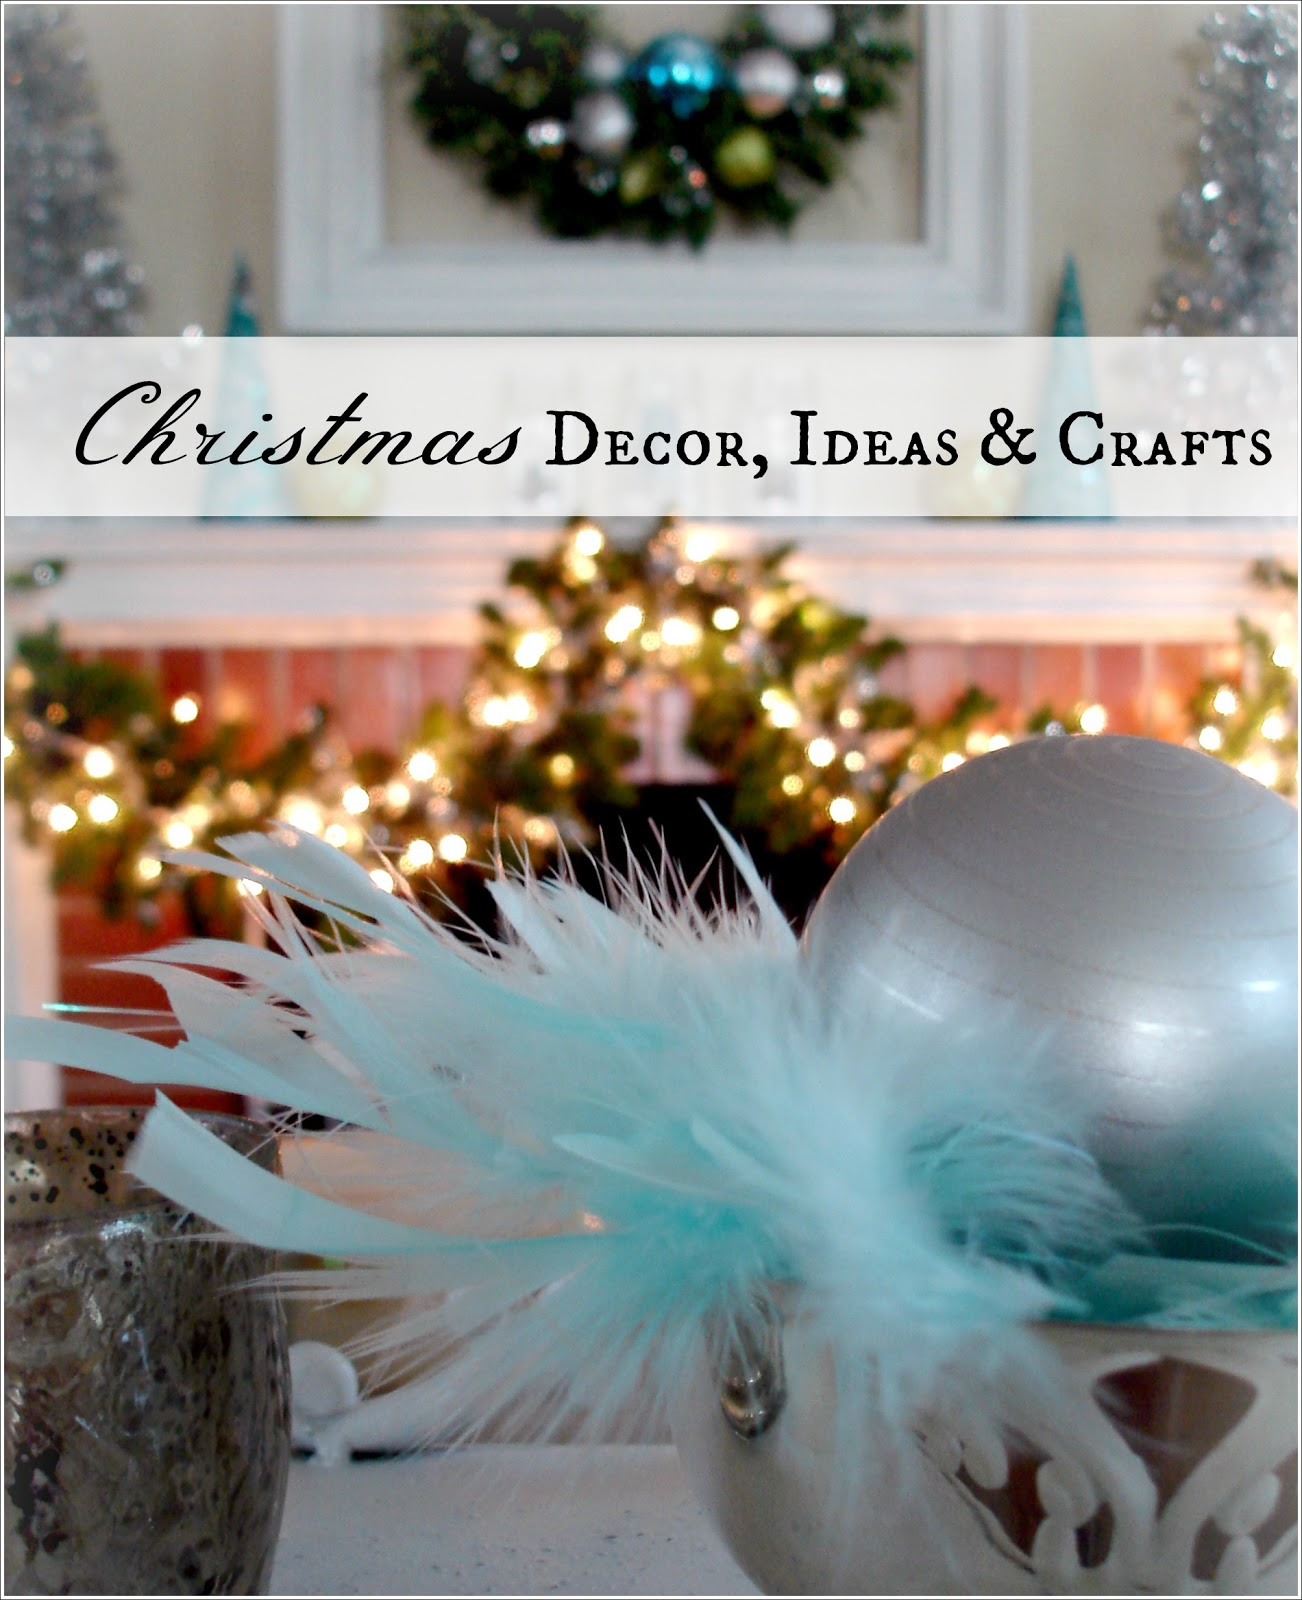 Christmas Decoration Stores: Decorating With Thrift Store Finds {Christmas Edition